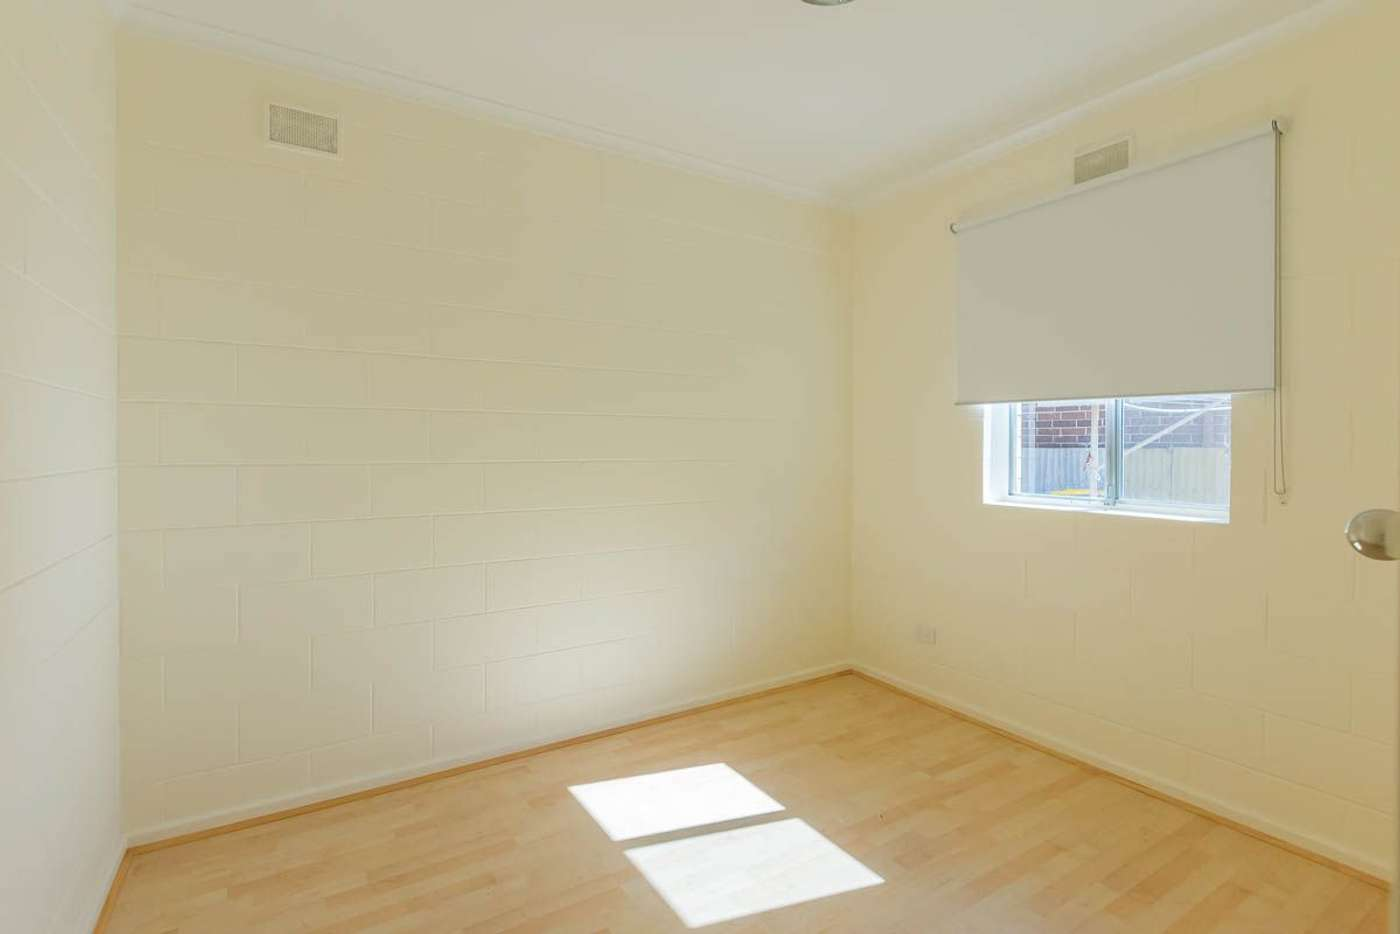 Sixth view of Homely unit listing, 7/2 Coventry Street, Oaklands Park SA 5046